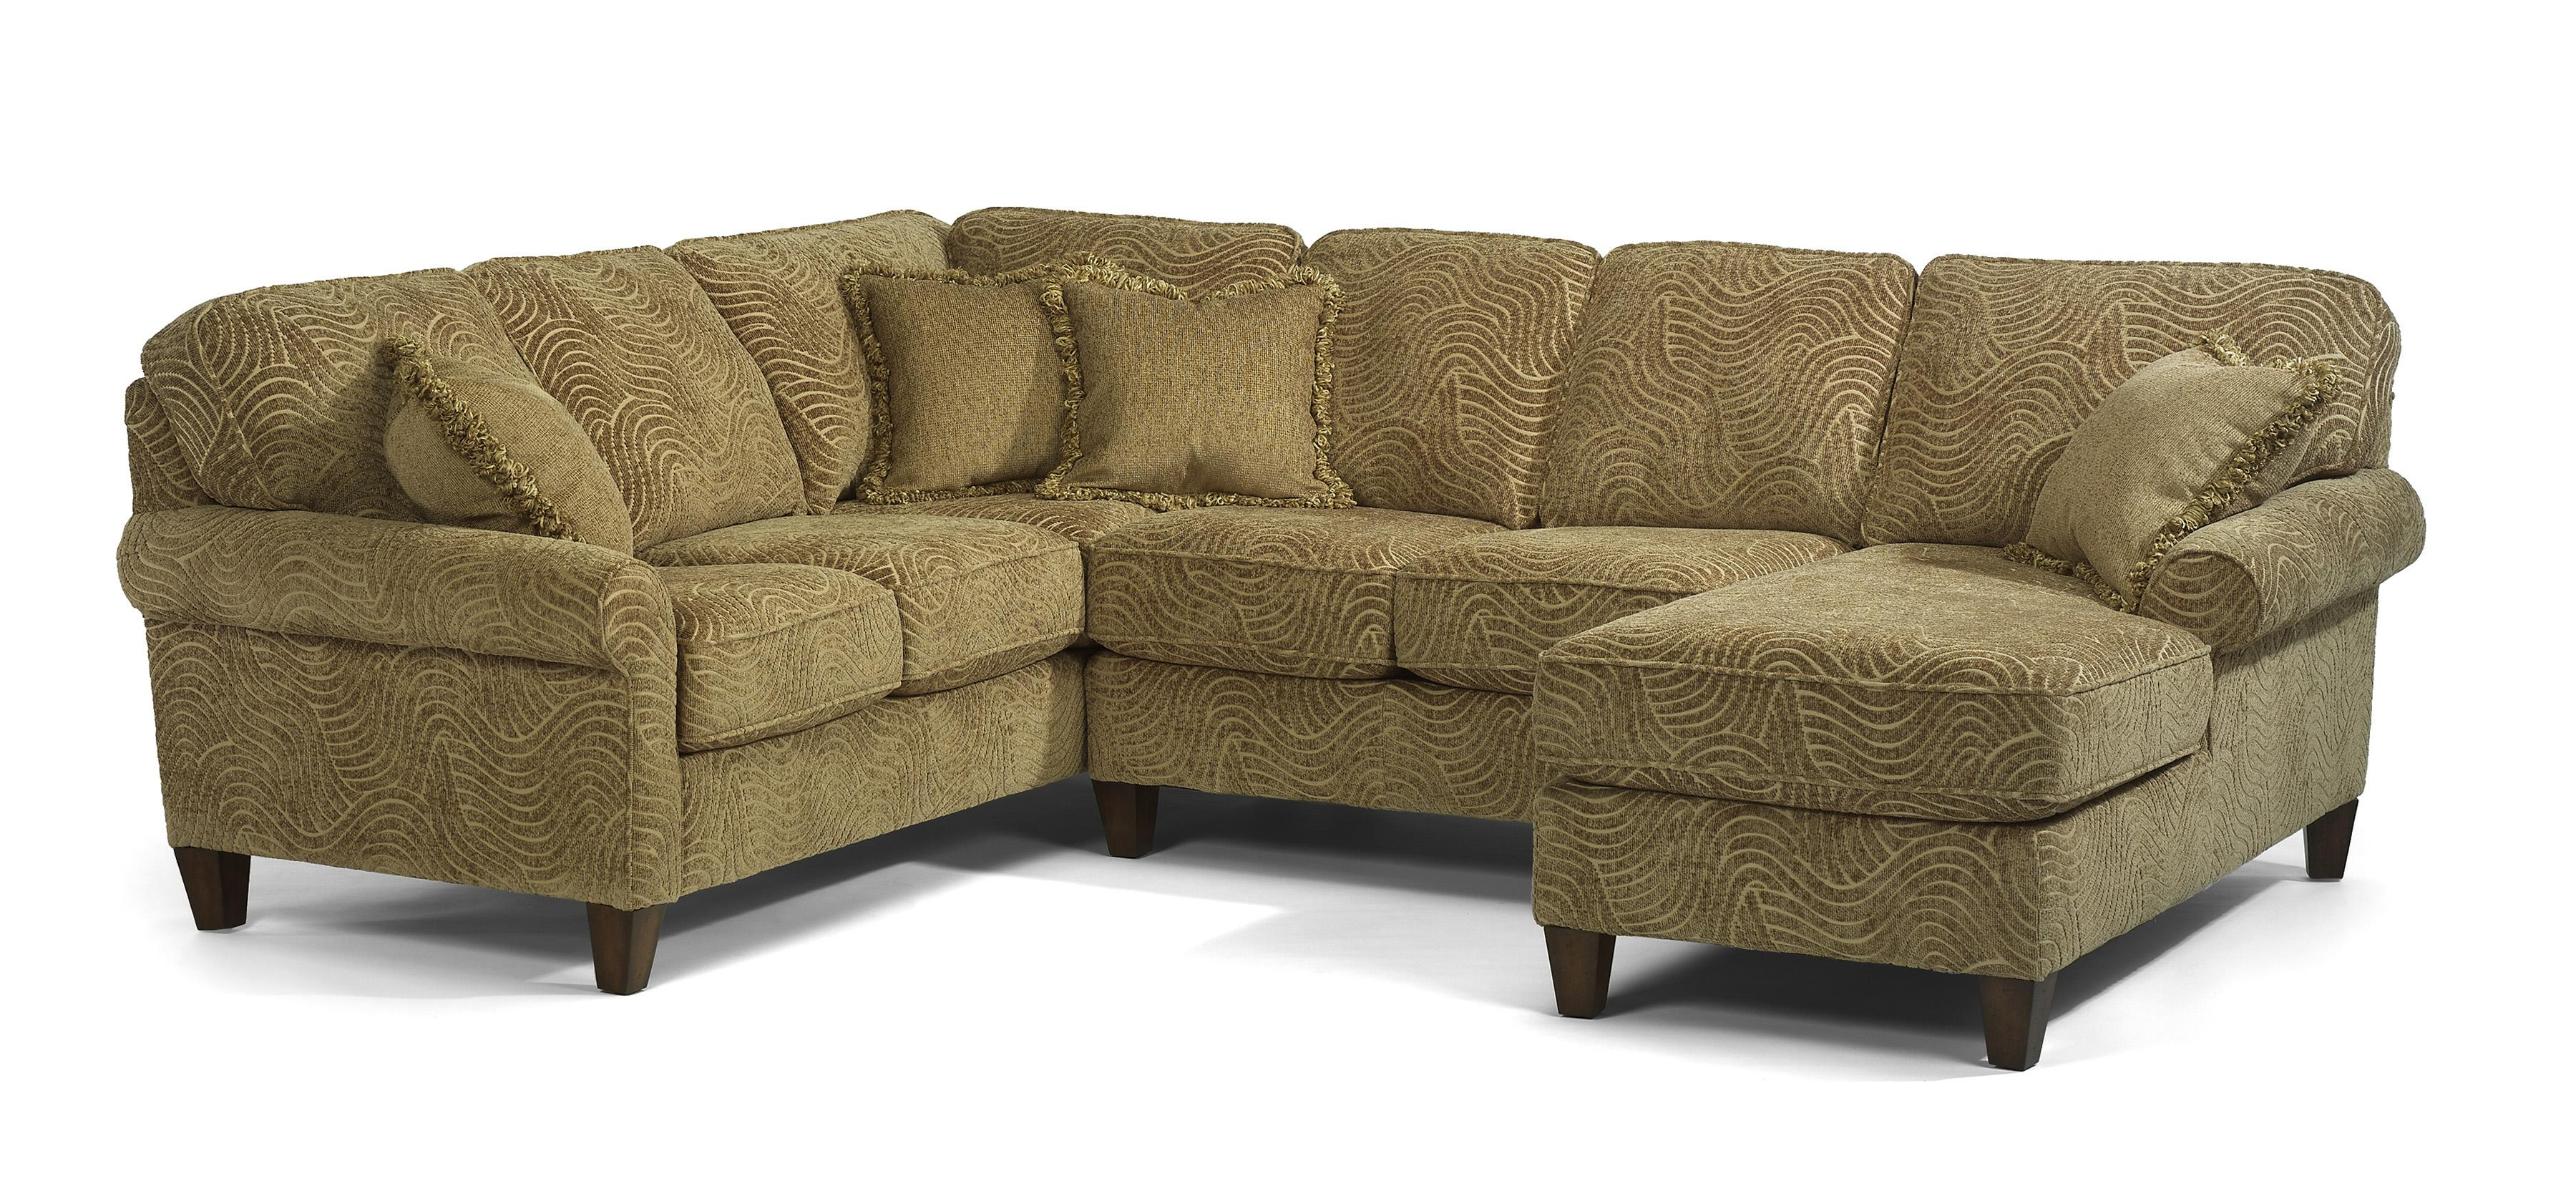 Most Current Sierra Down 3 Piece Sectionals With Laf Chaise Within Flexsteel Westside Casual Corner Sectional Fabric Upholstered Sofa (View 20 of 20)